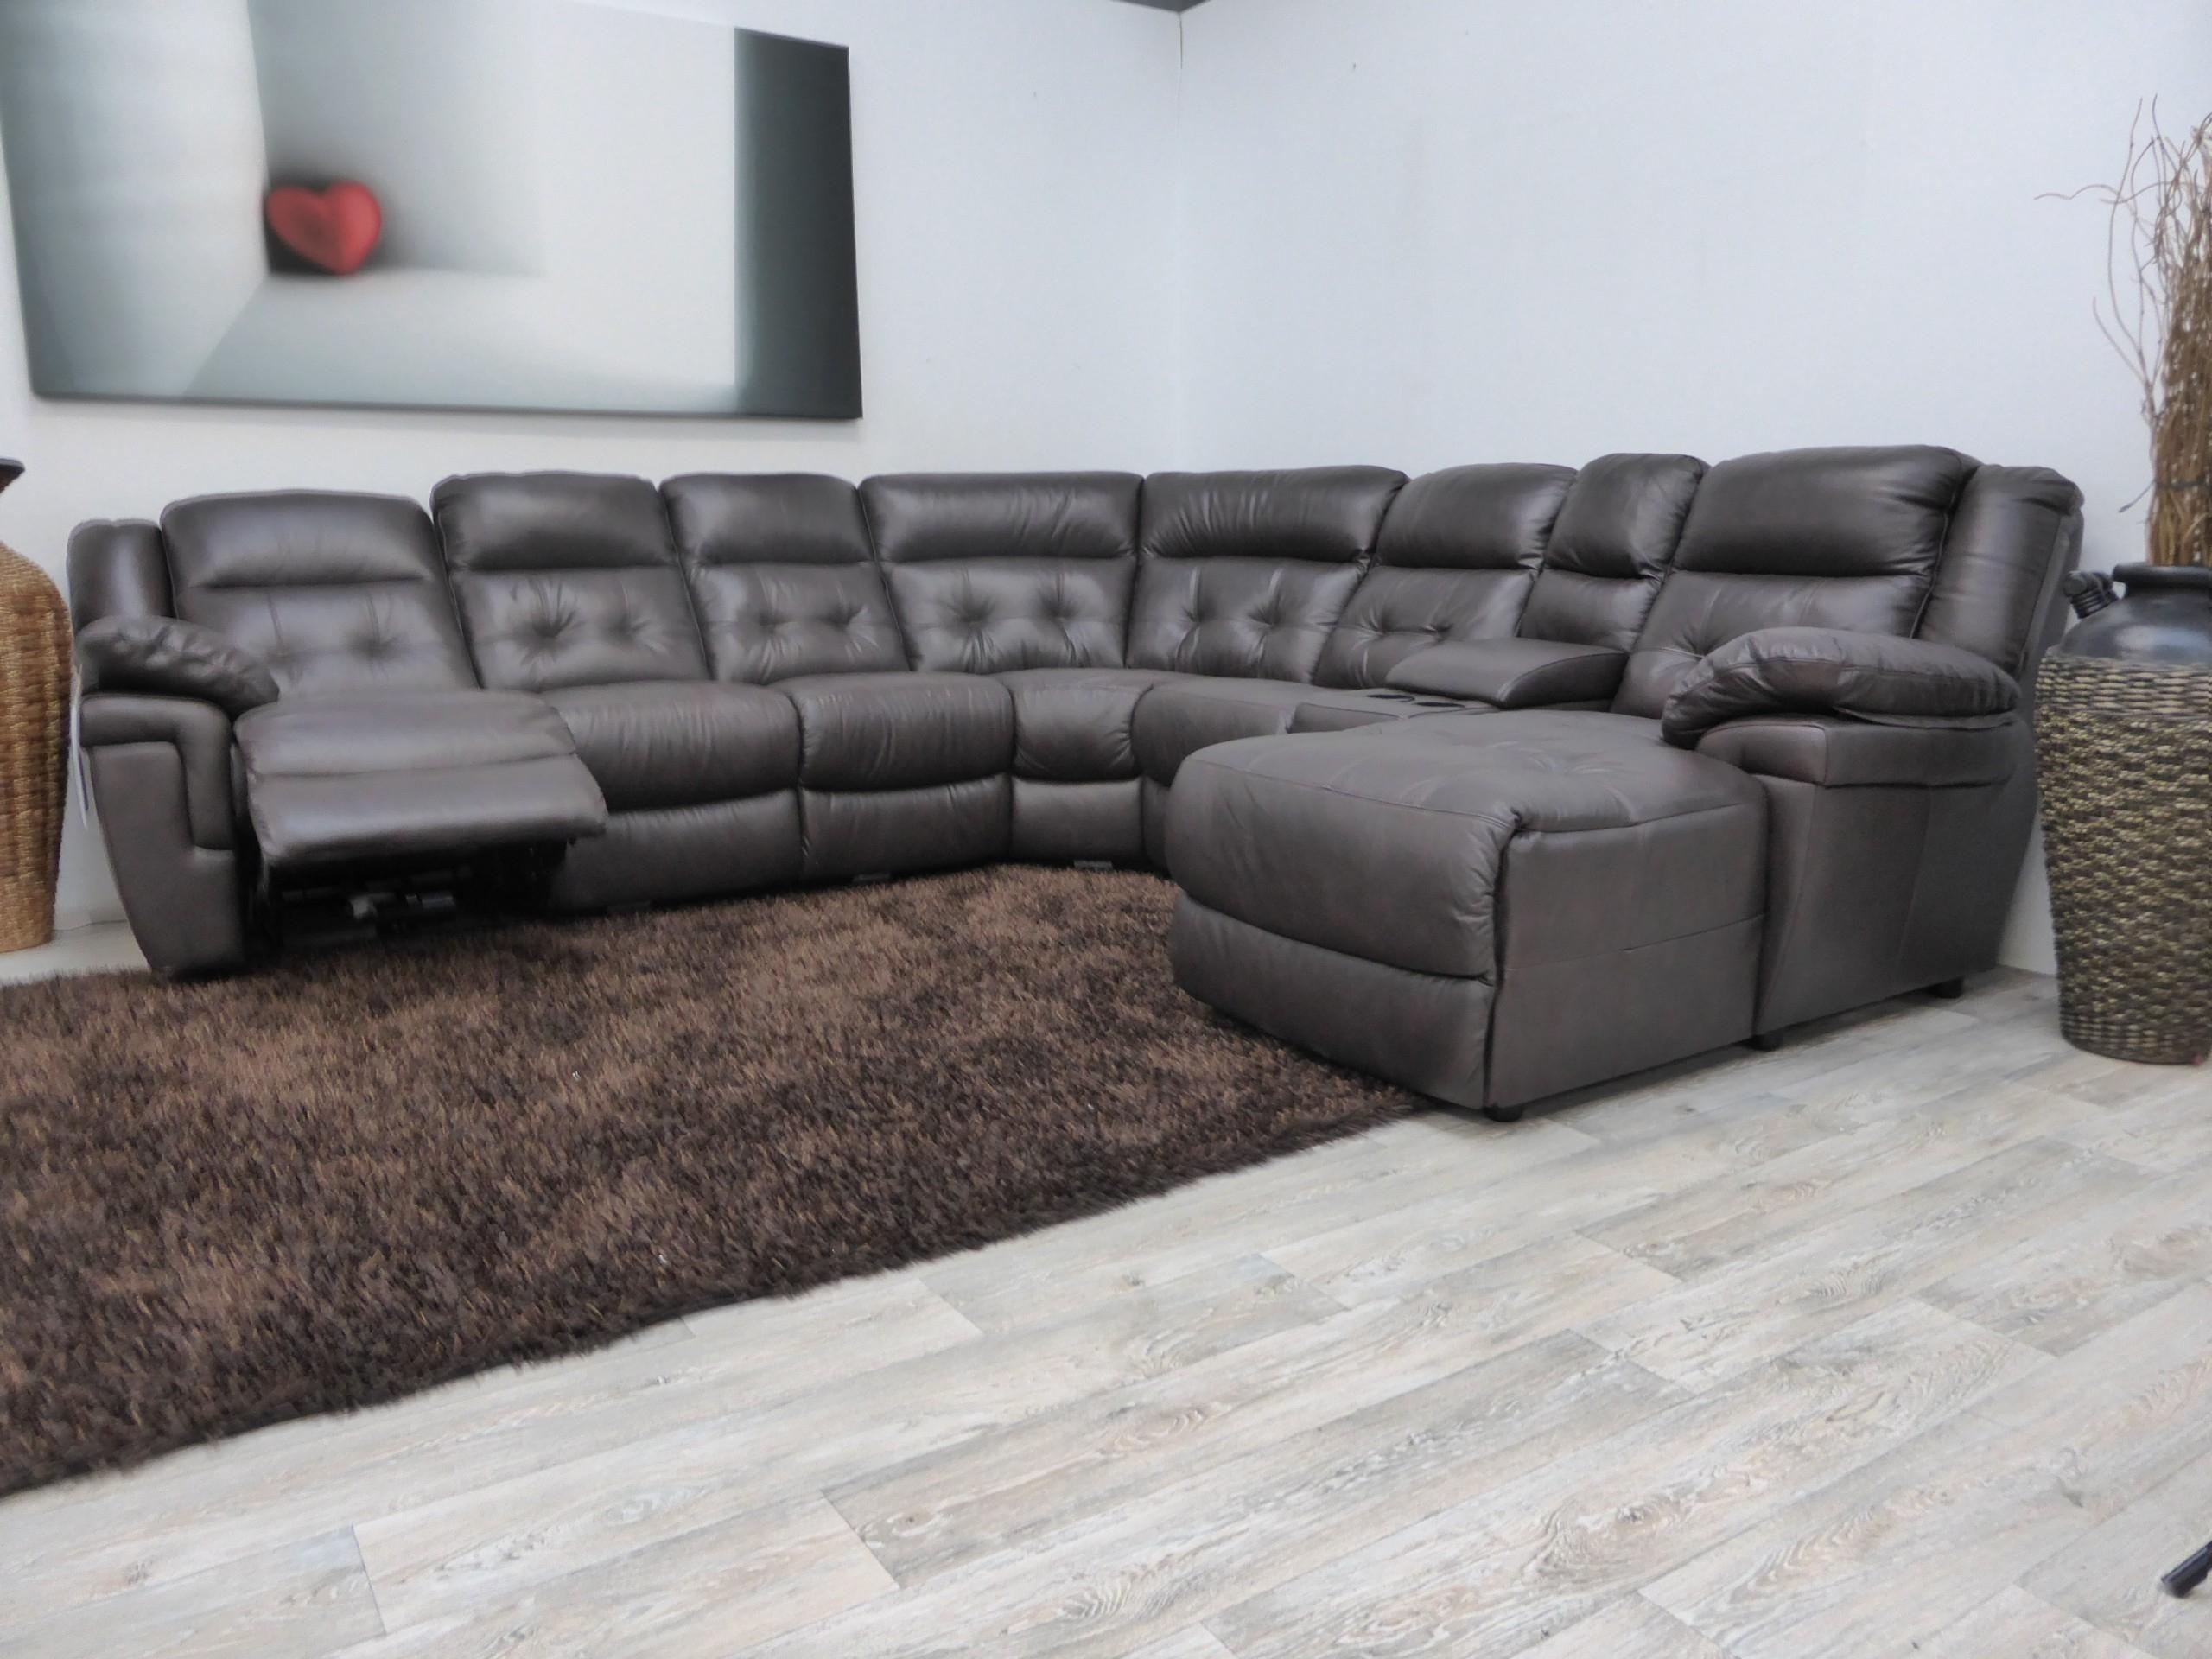 Sofas Center : Lazy Boy Sectional Sofas Formidable Images Ideas Pertaining To Lazy Boy Sectional (Image 19 of 20)